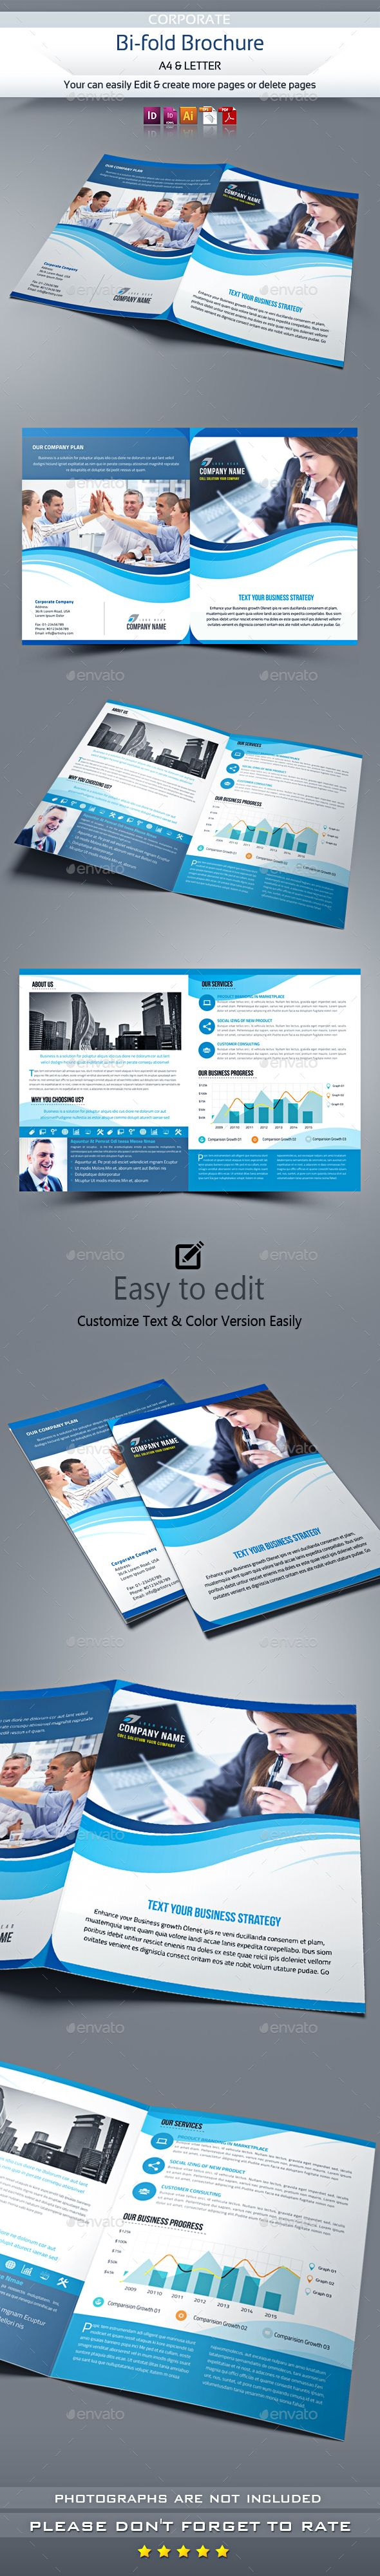 Great 1 Page Resume Format Free Download Big 100 Free Resume Builder And Download Rectangular 100 Free Resume Builder Online 1099 Contract Template Old 15 Year Old Resume Blue2 Circle Template Corporate Bi Fold Brochure Template | Illustratori, Modello Di ..